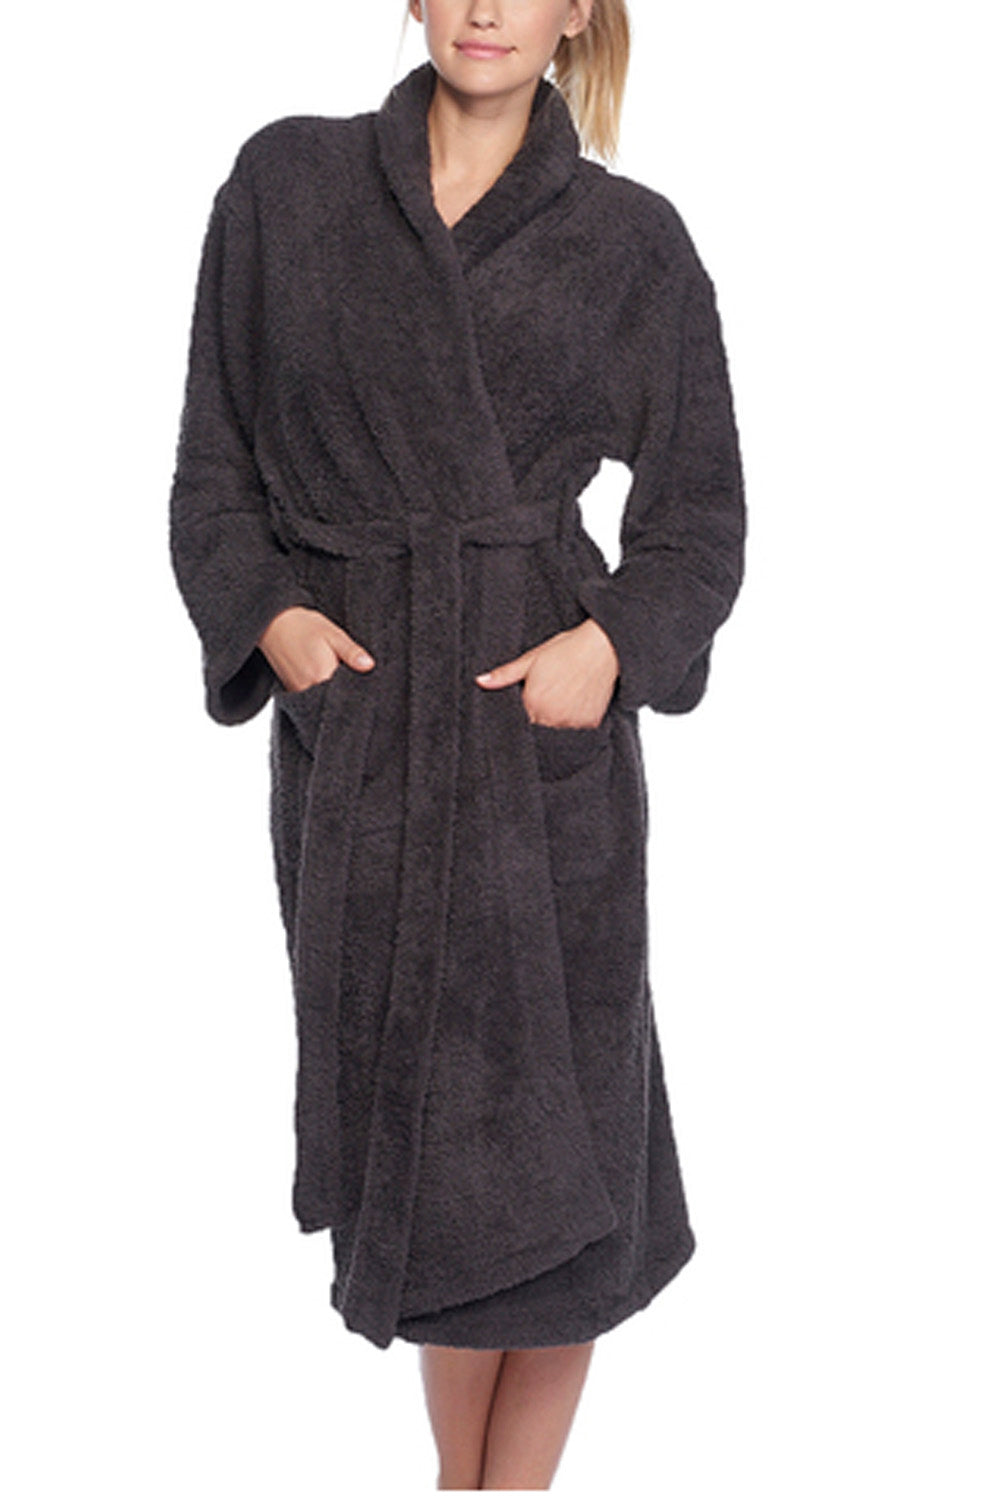 CozyChic Bath Robe - Carbon Dark Gray